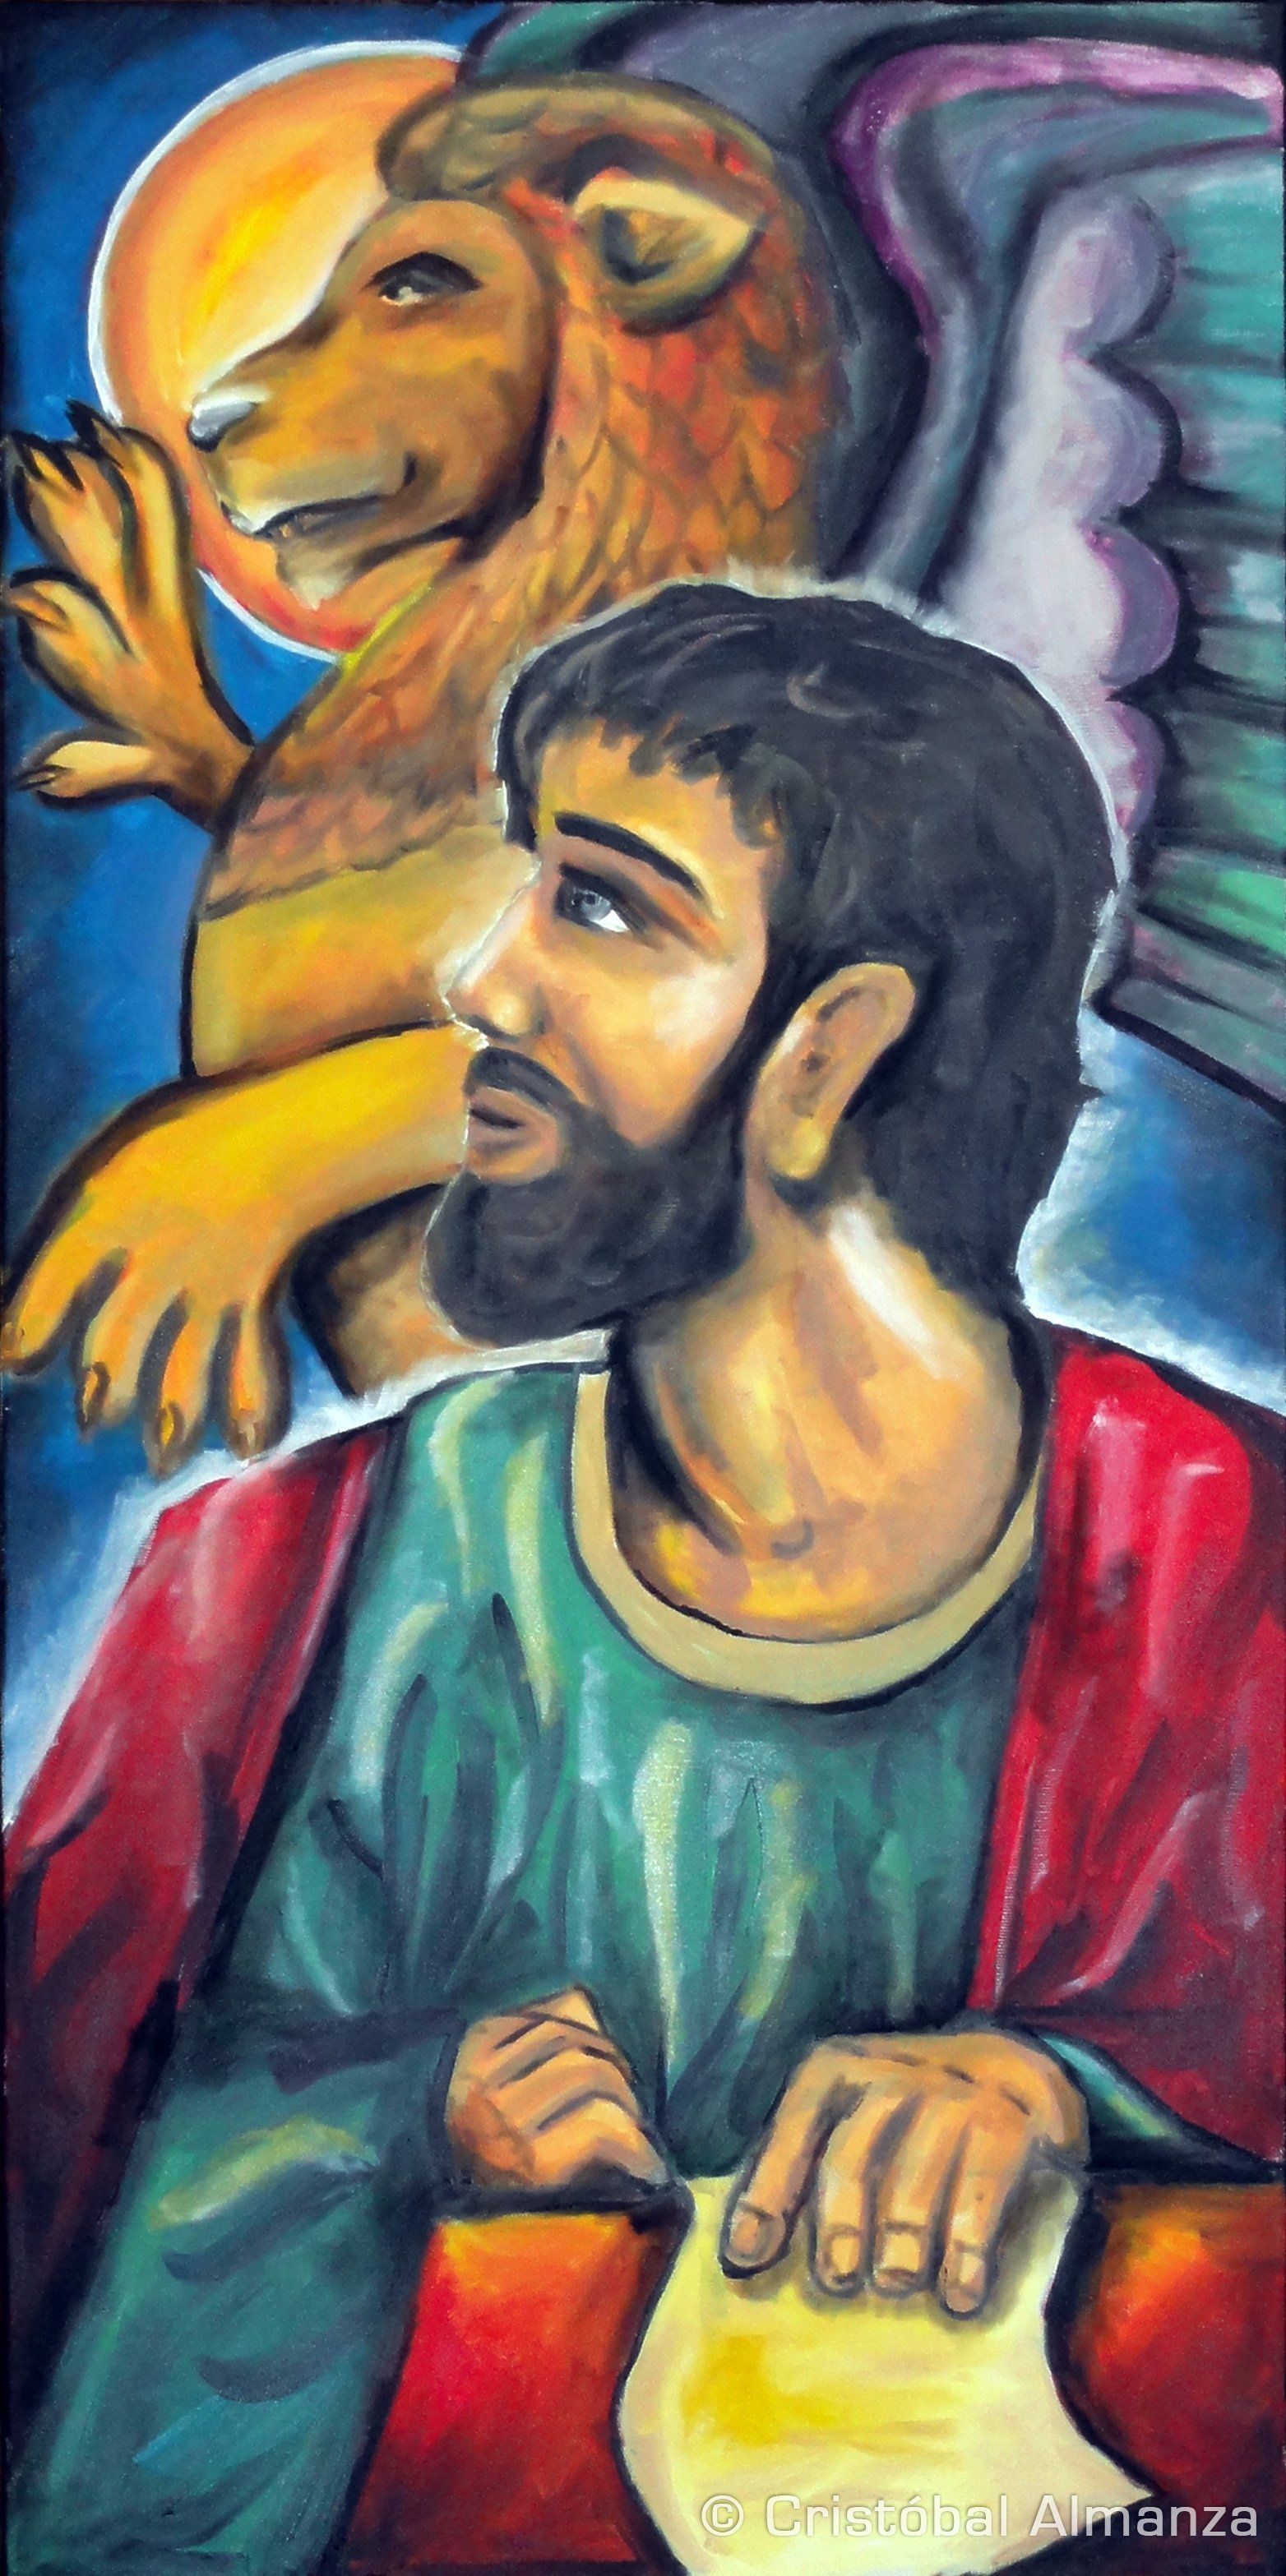 Leō – Mark the Evangelist